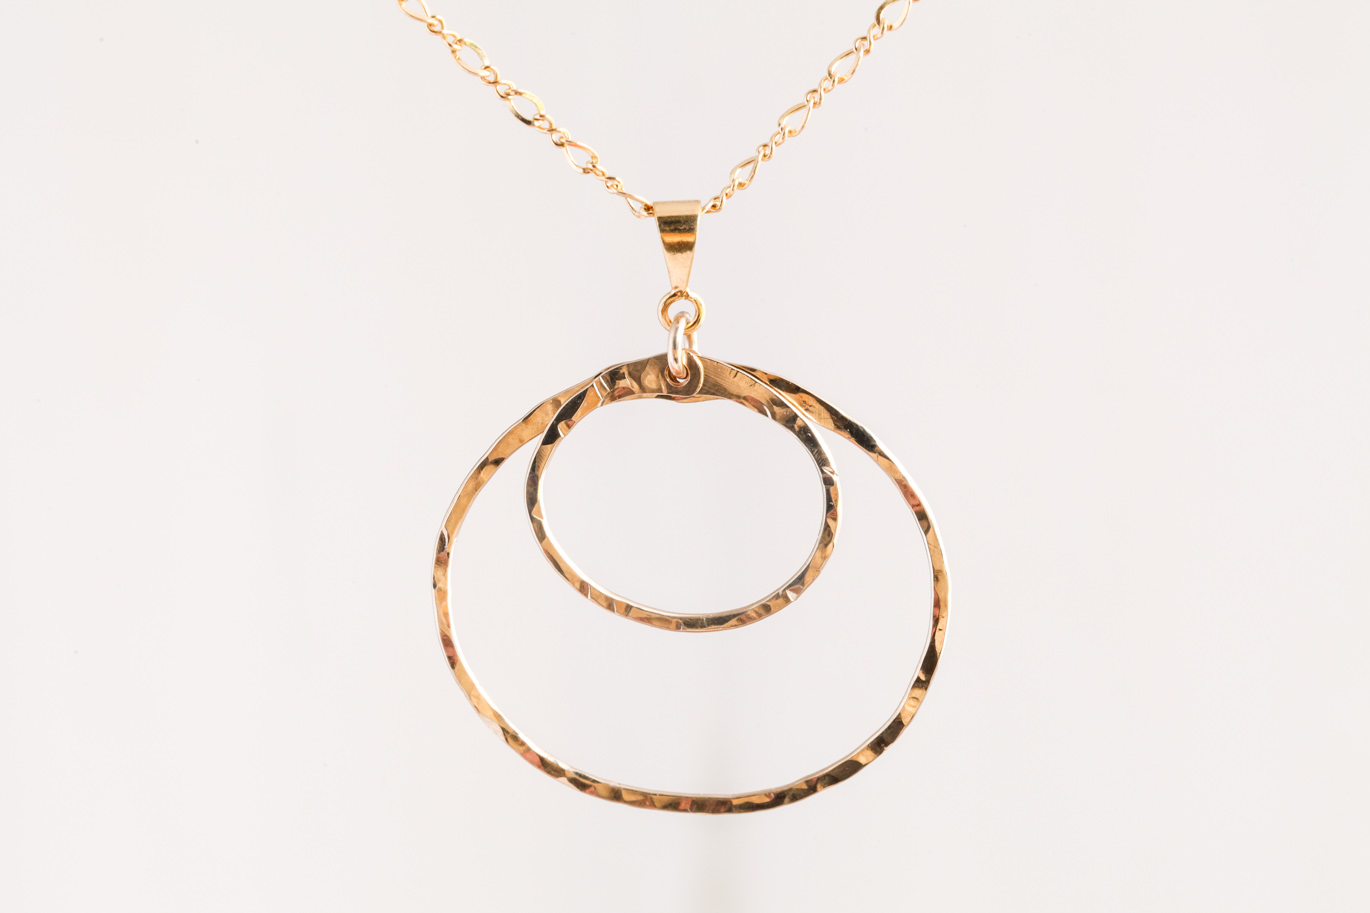 Double happiness rustic double circle pendant necklace double happiness rustic double circle pendant necklace hammered gold dirtypretty artwear aloadofball Image collections